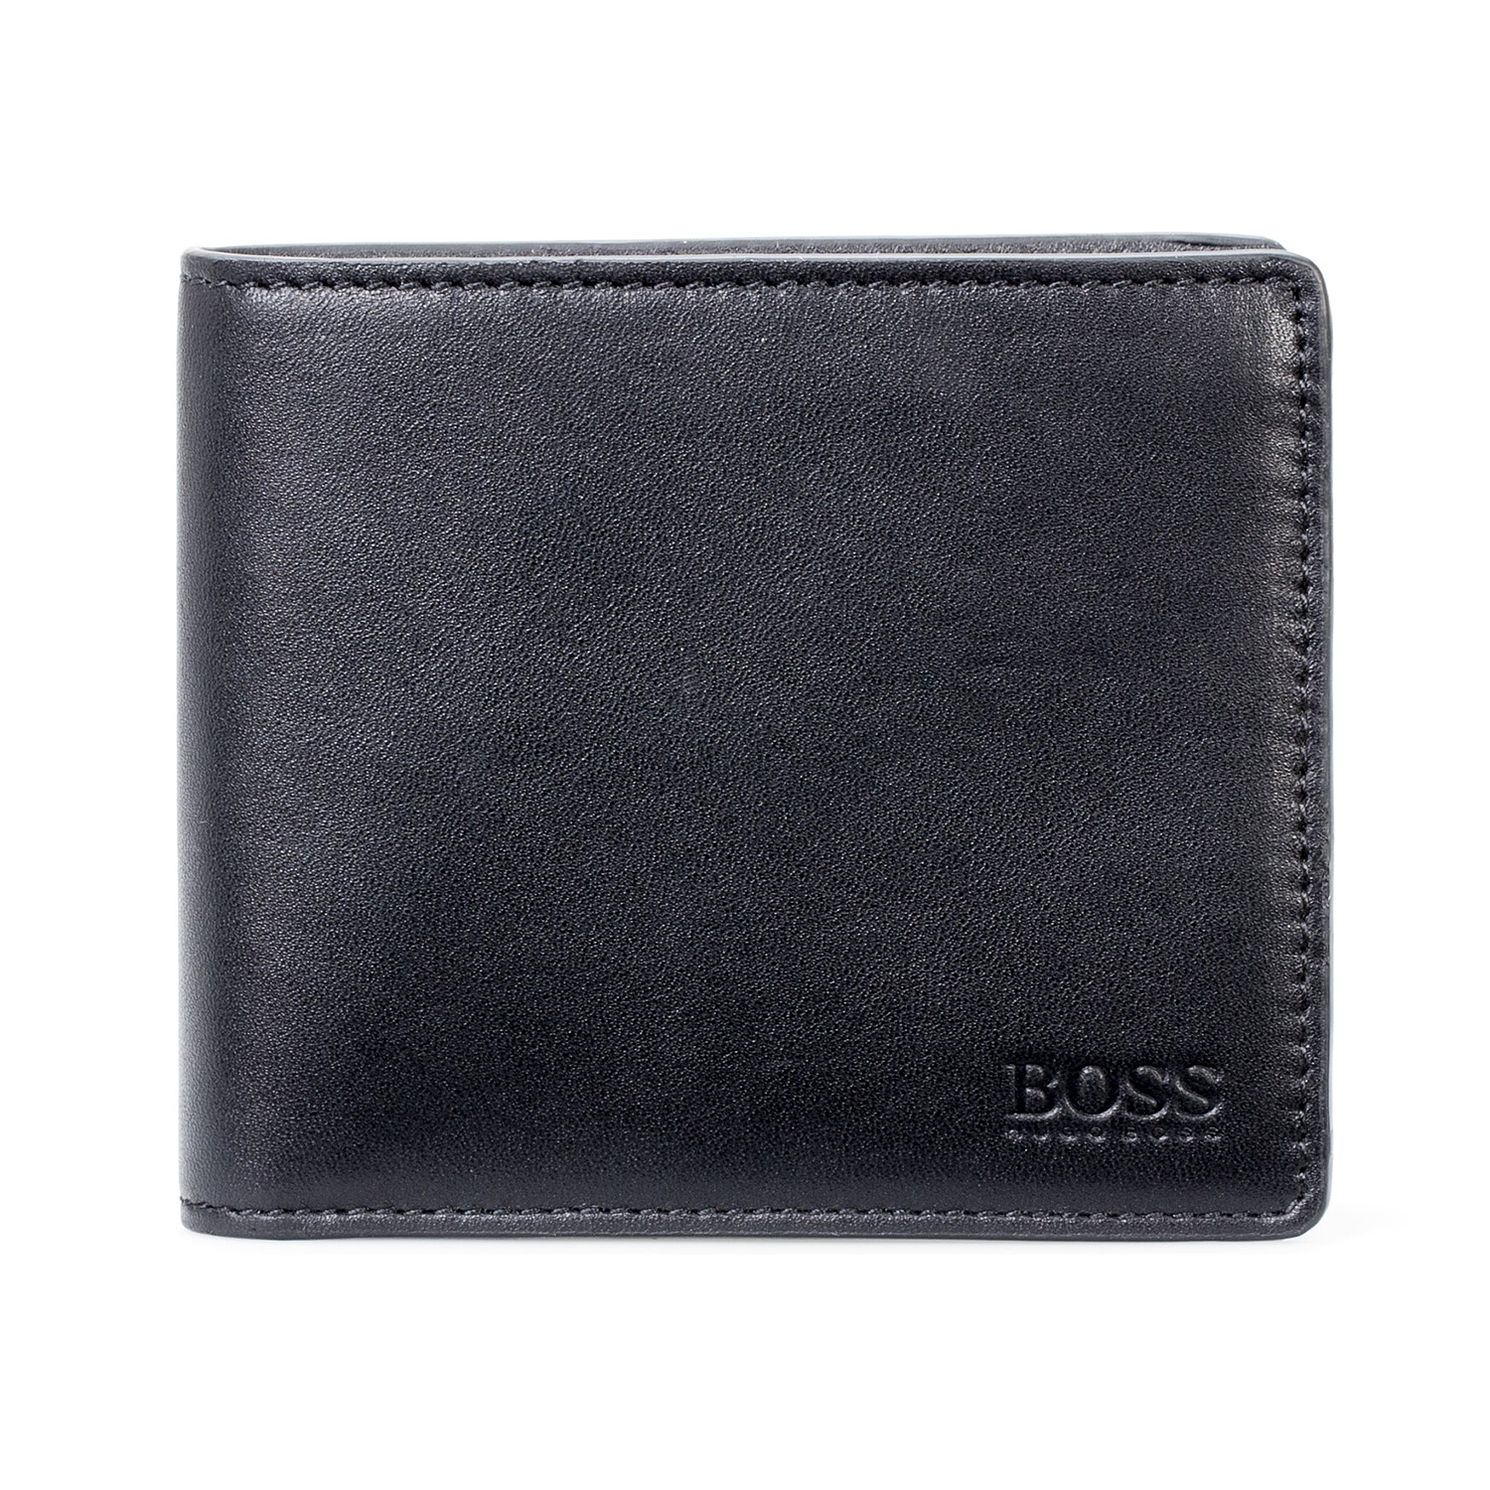 BOSS Majestic Men's Black Leather Wallet - Product number 9694250